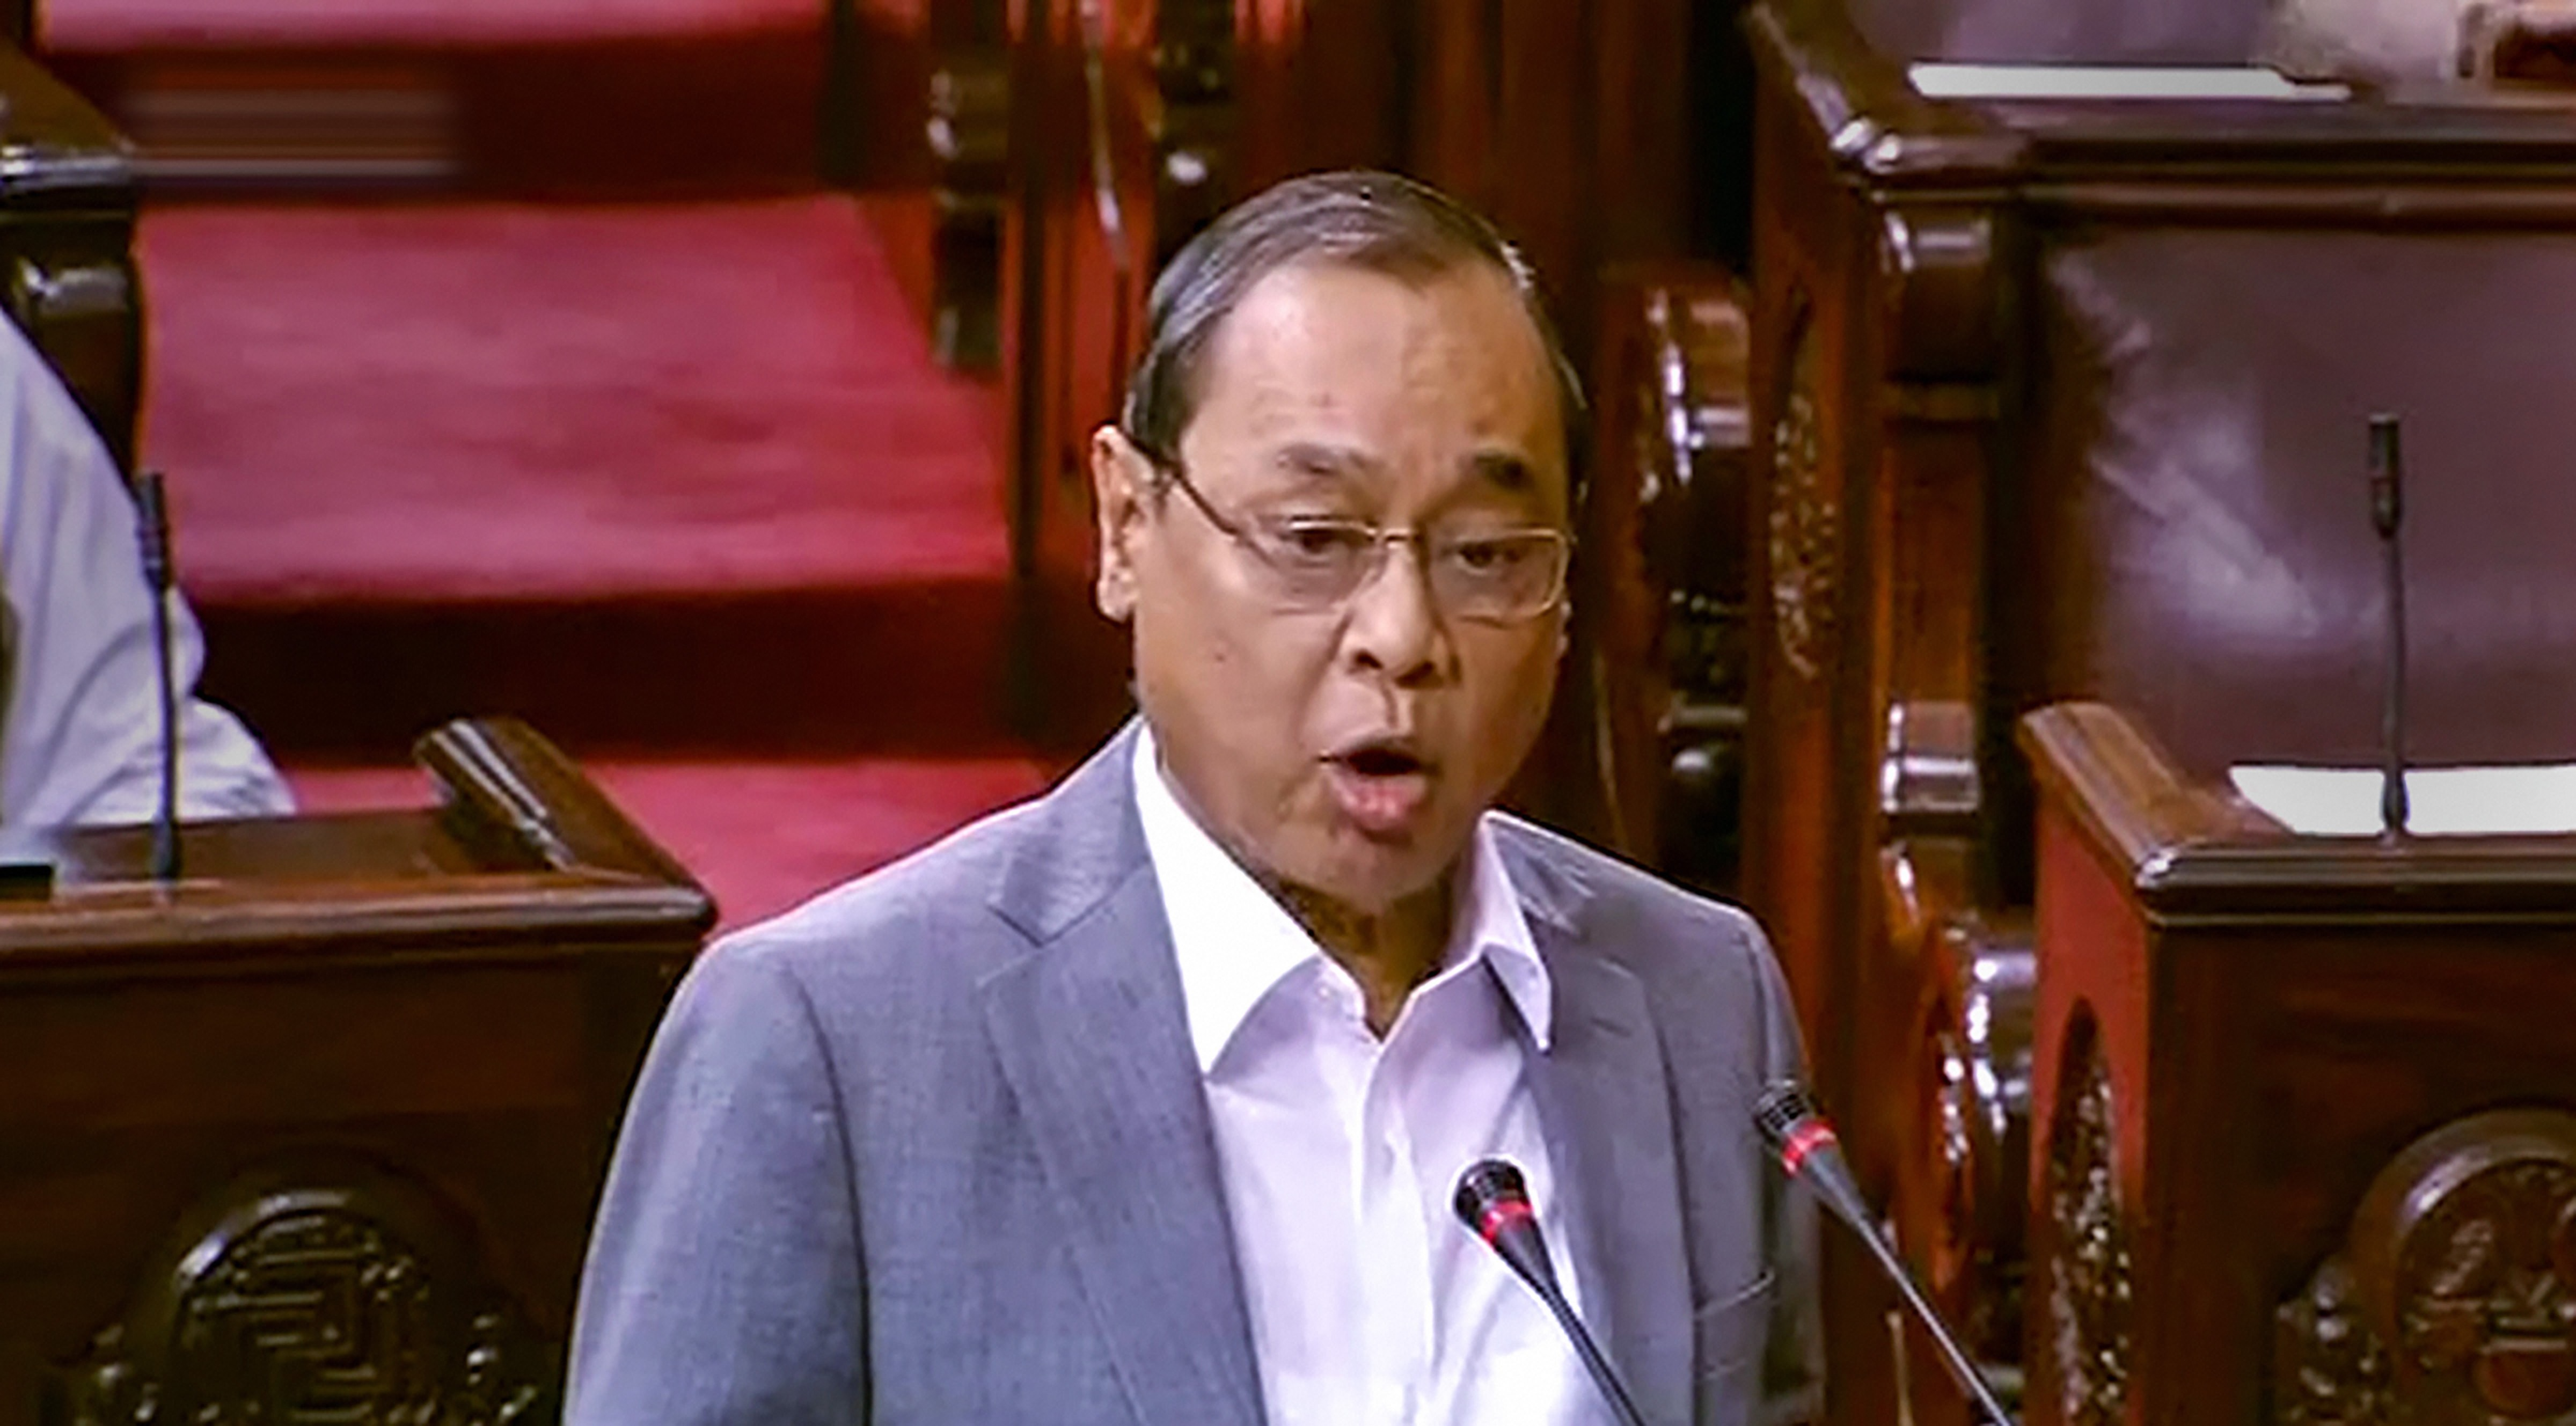 Former Chief Justice of India (CJI) Ranjan Gogoi takes oath as Rajya Sabha MP during the ongoing Budget Session of Parliament, in New Delhi, Thursday, March 19, 2020